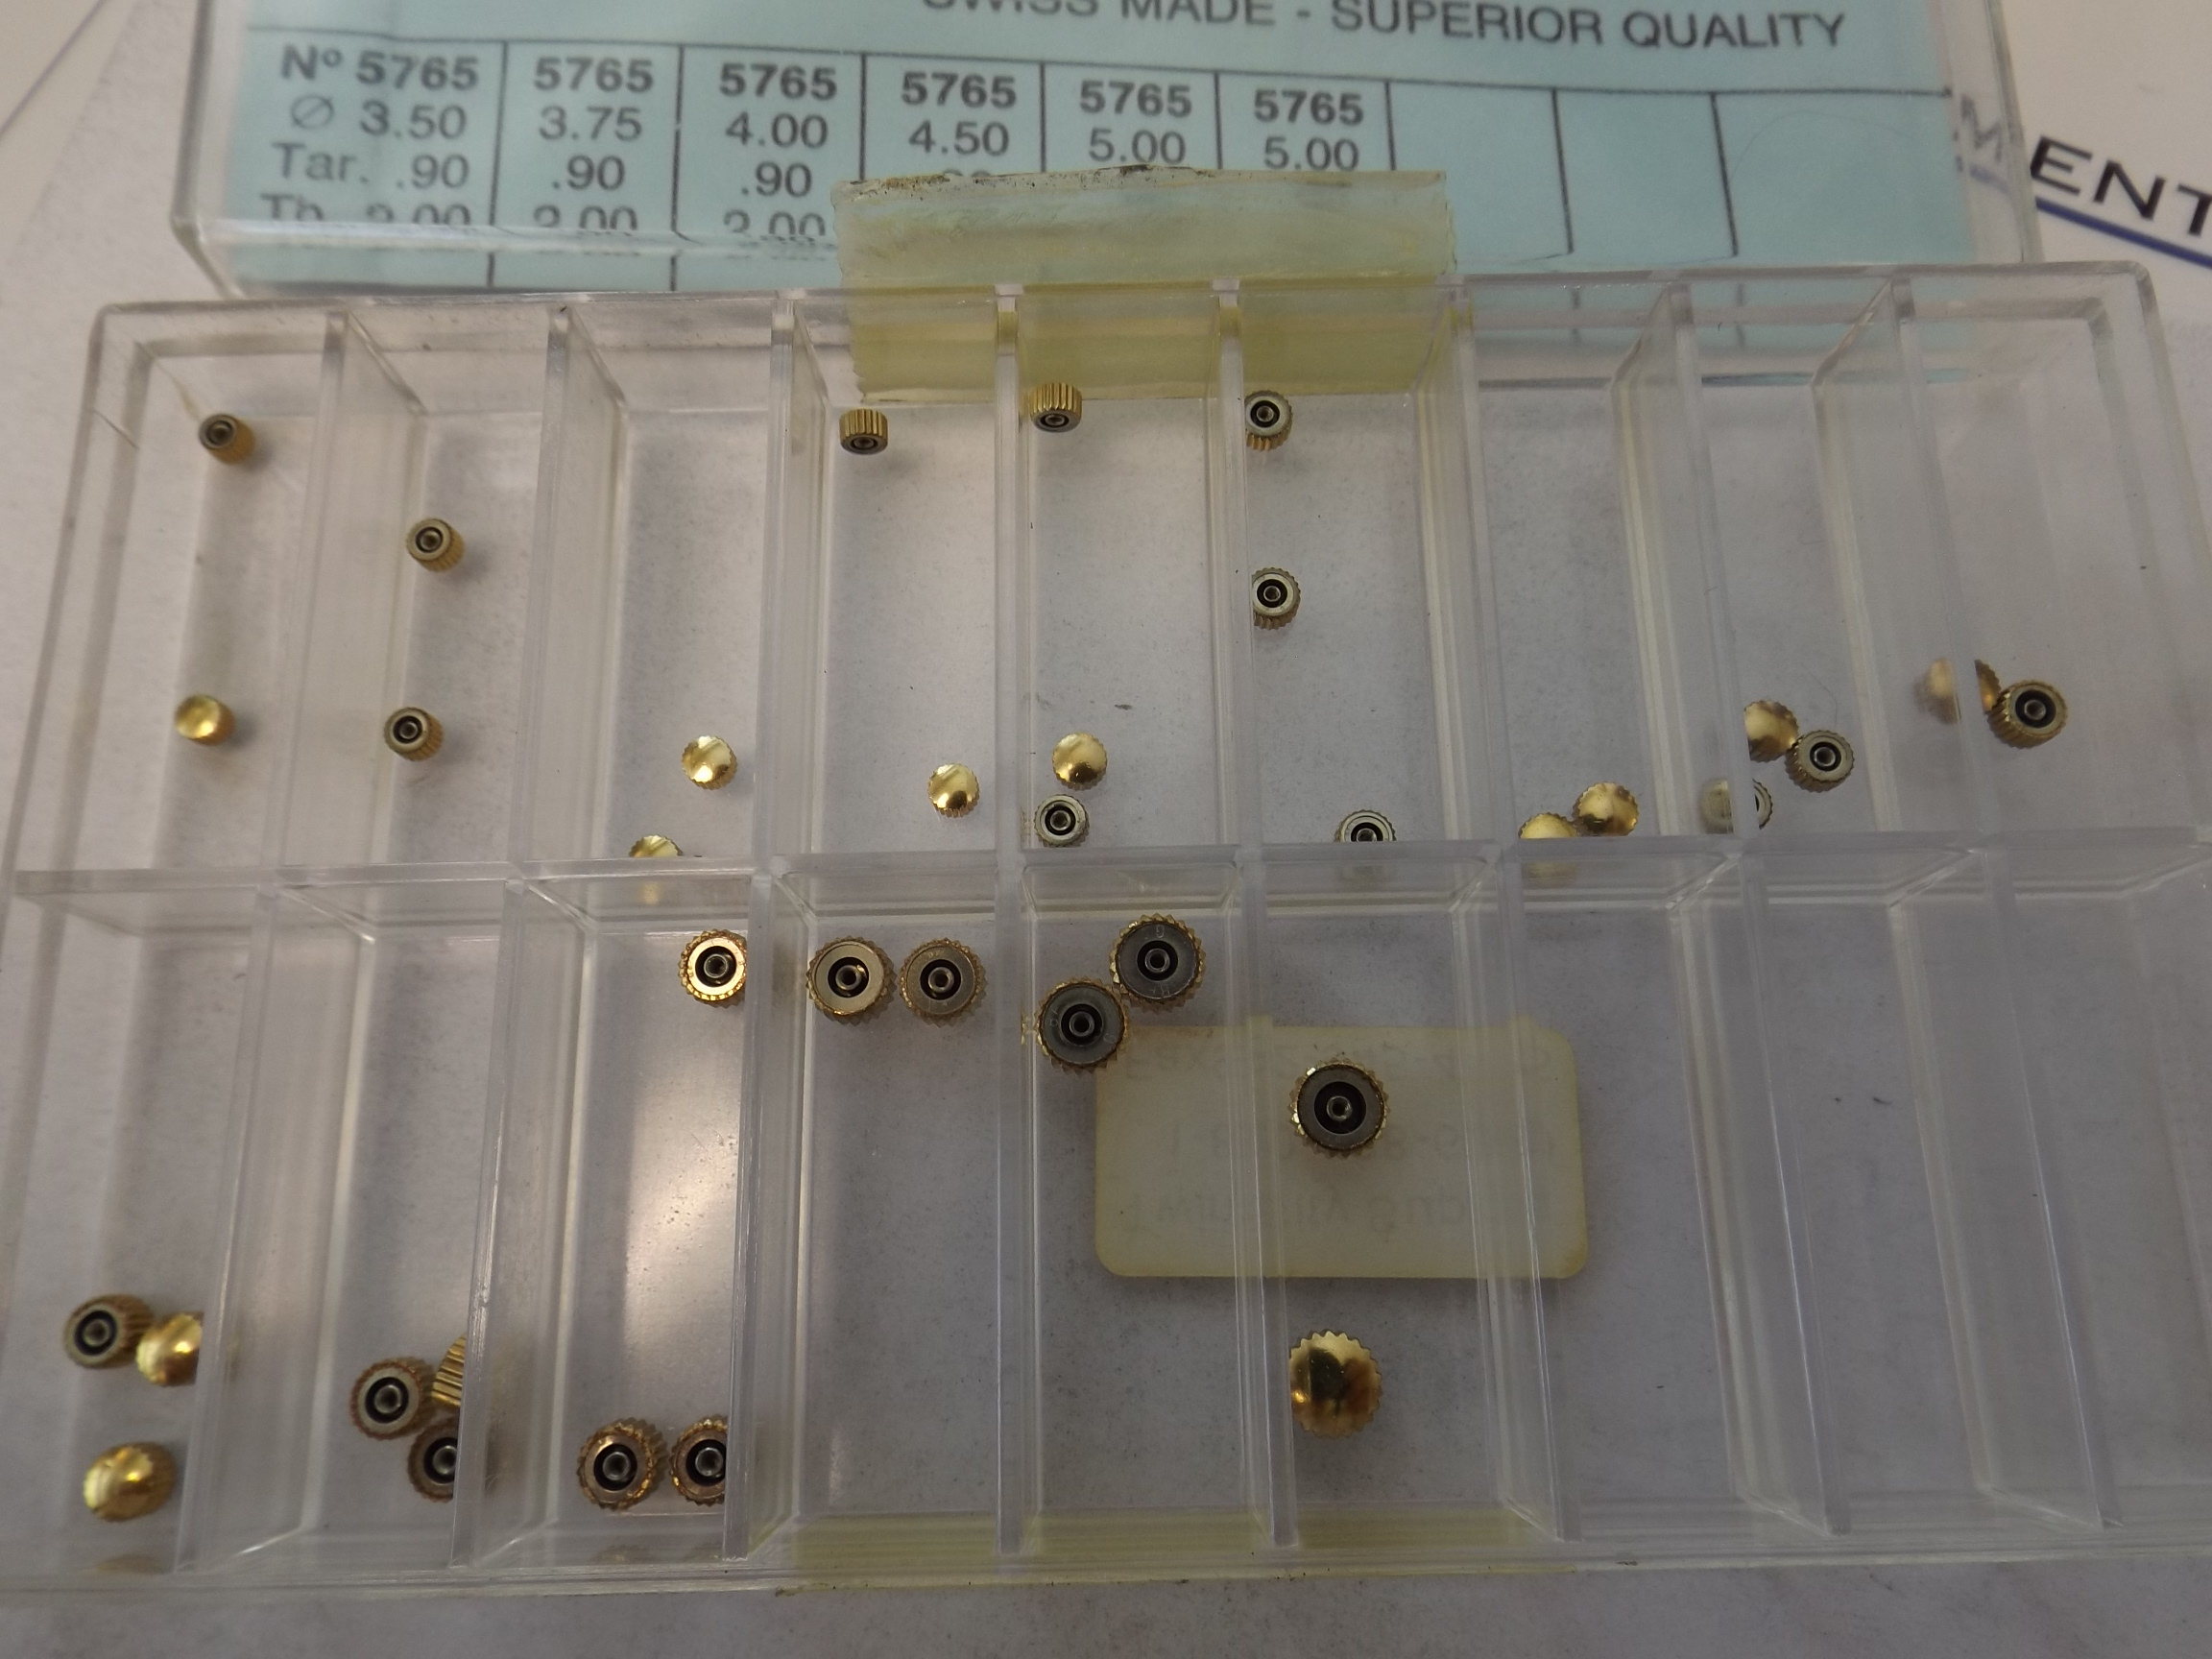 5700 A*F Assortment of O-Ring, Waterproof Quartz Watch Crowns--36 pieces, Yellow- 1 Only